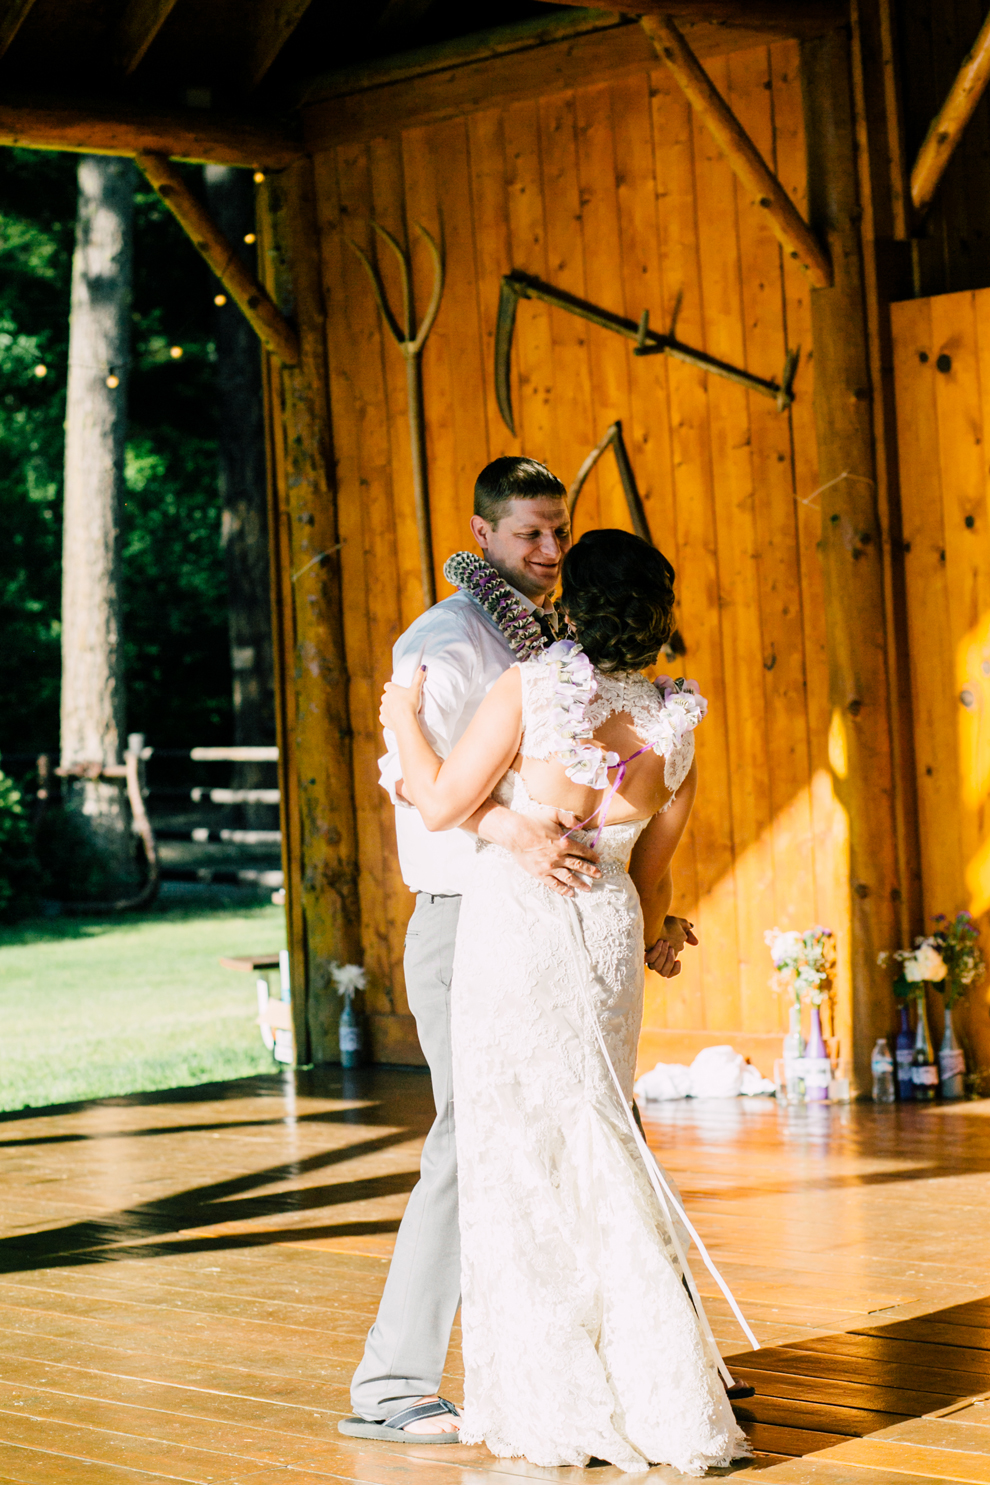 095-leavenworth-mountain-springs-lodge-wedding-karena-saul-katheryn-moran-photography.jpg